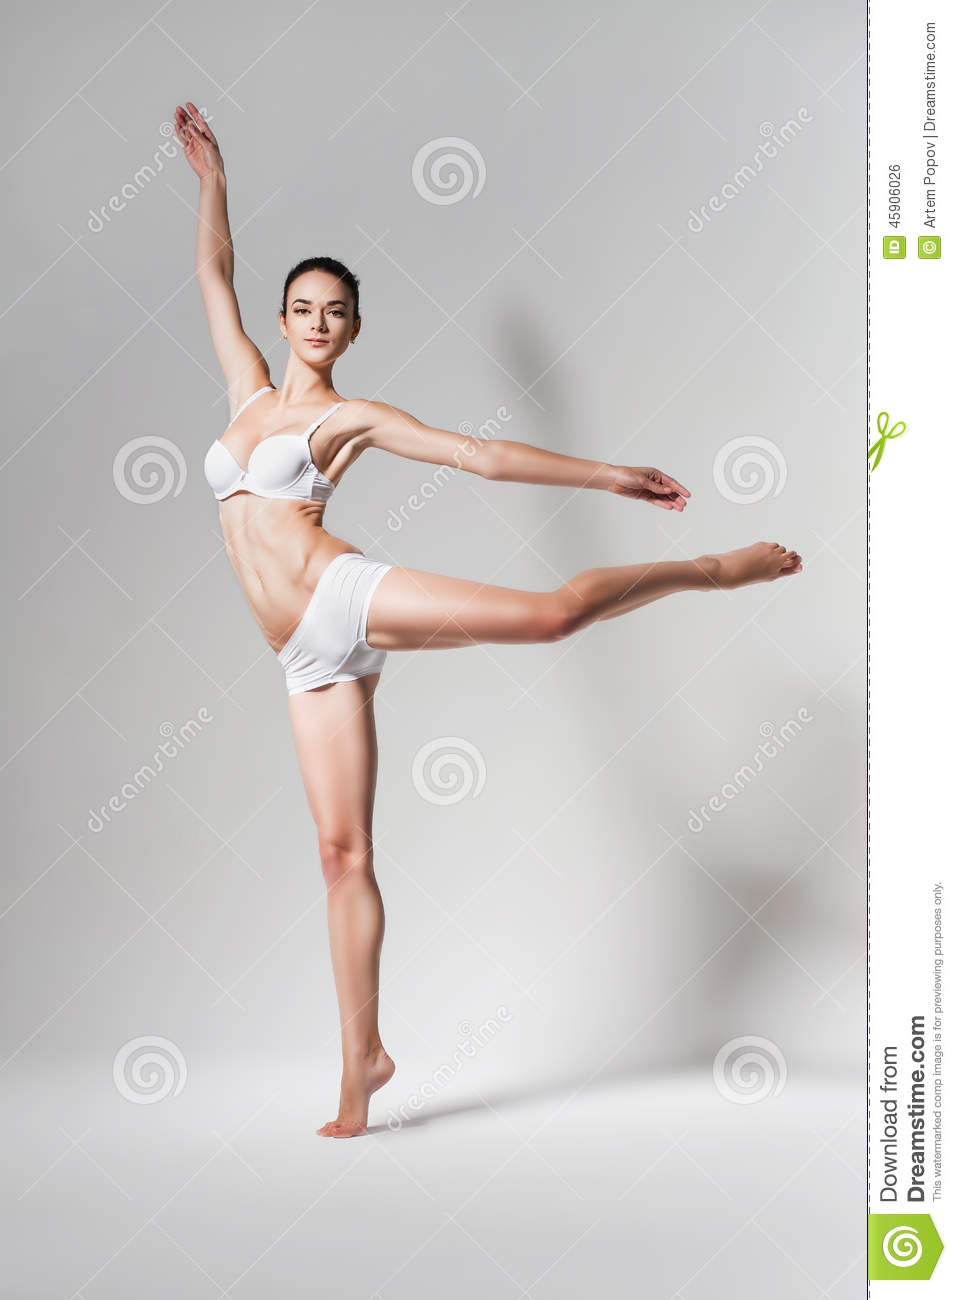 Ballerina dating site